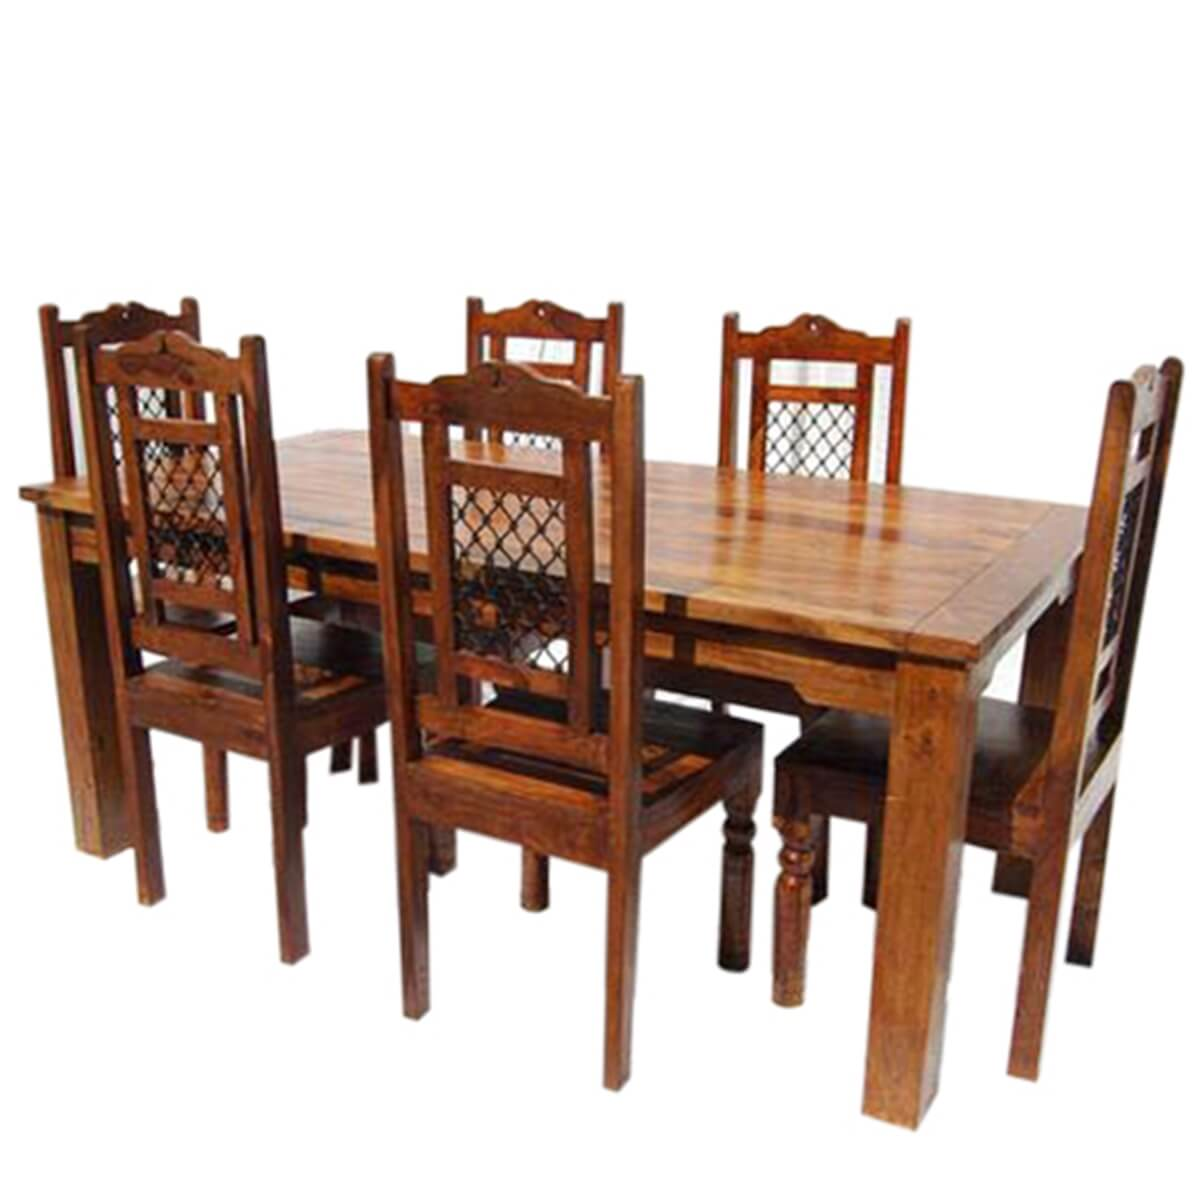 Swiss alps solid wood 7pc farmhouse dining table and chair set for Solid wood dining table sets